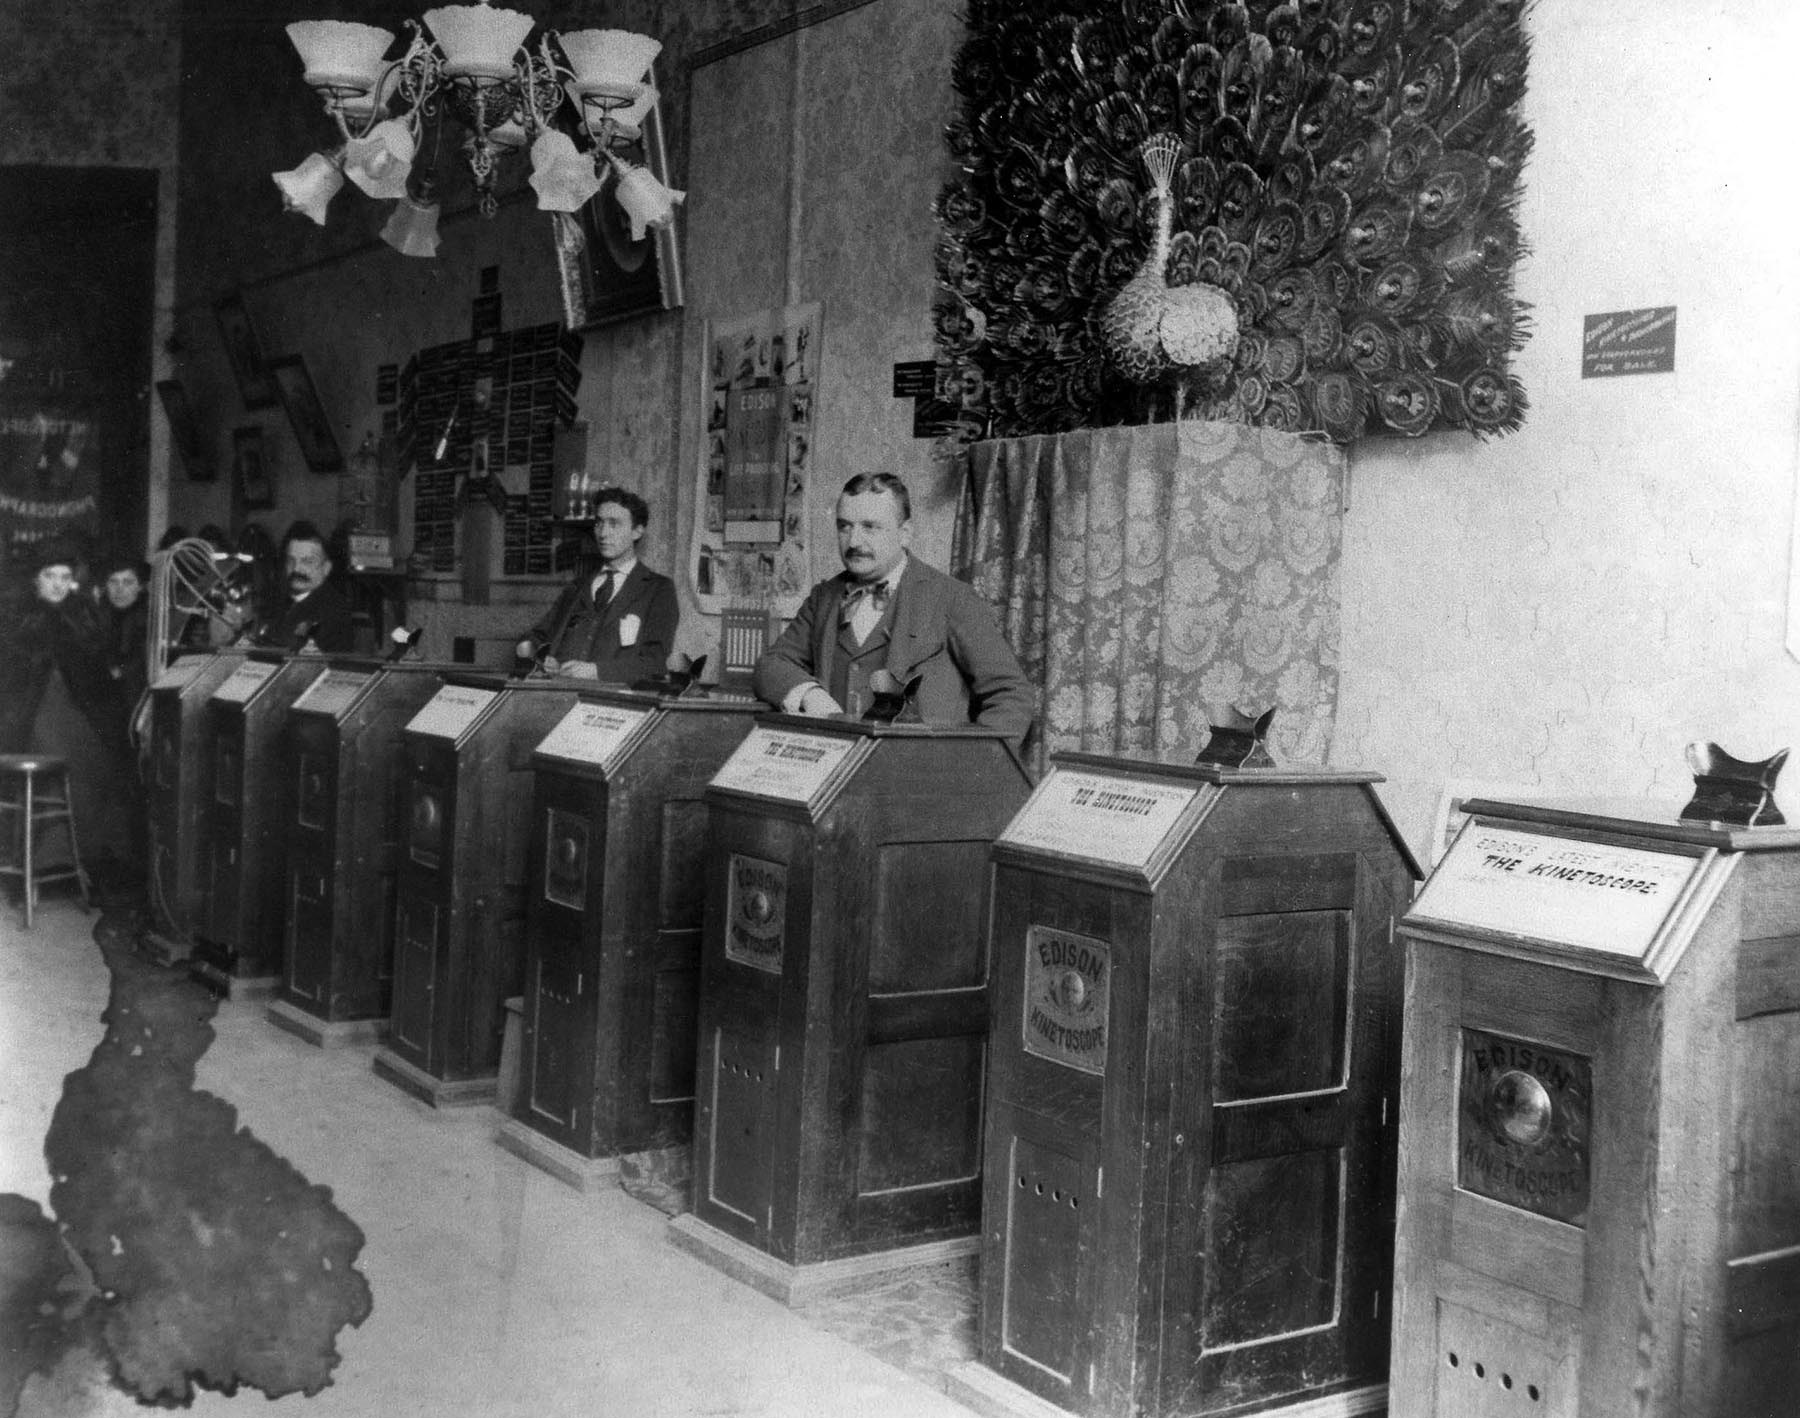 Kinetoscope parlor. Photo Courtesy from the American Society of Cinematographers. https://theasc.com/asc/asc-museum-kinetoscope